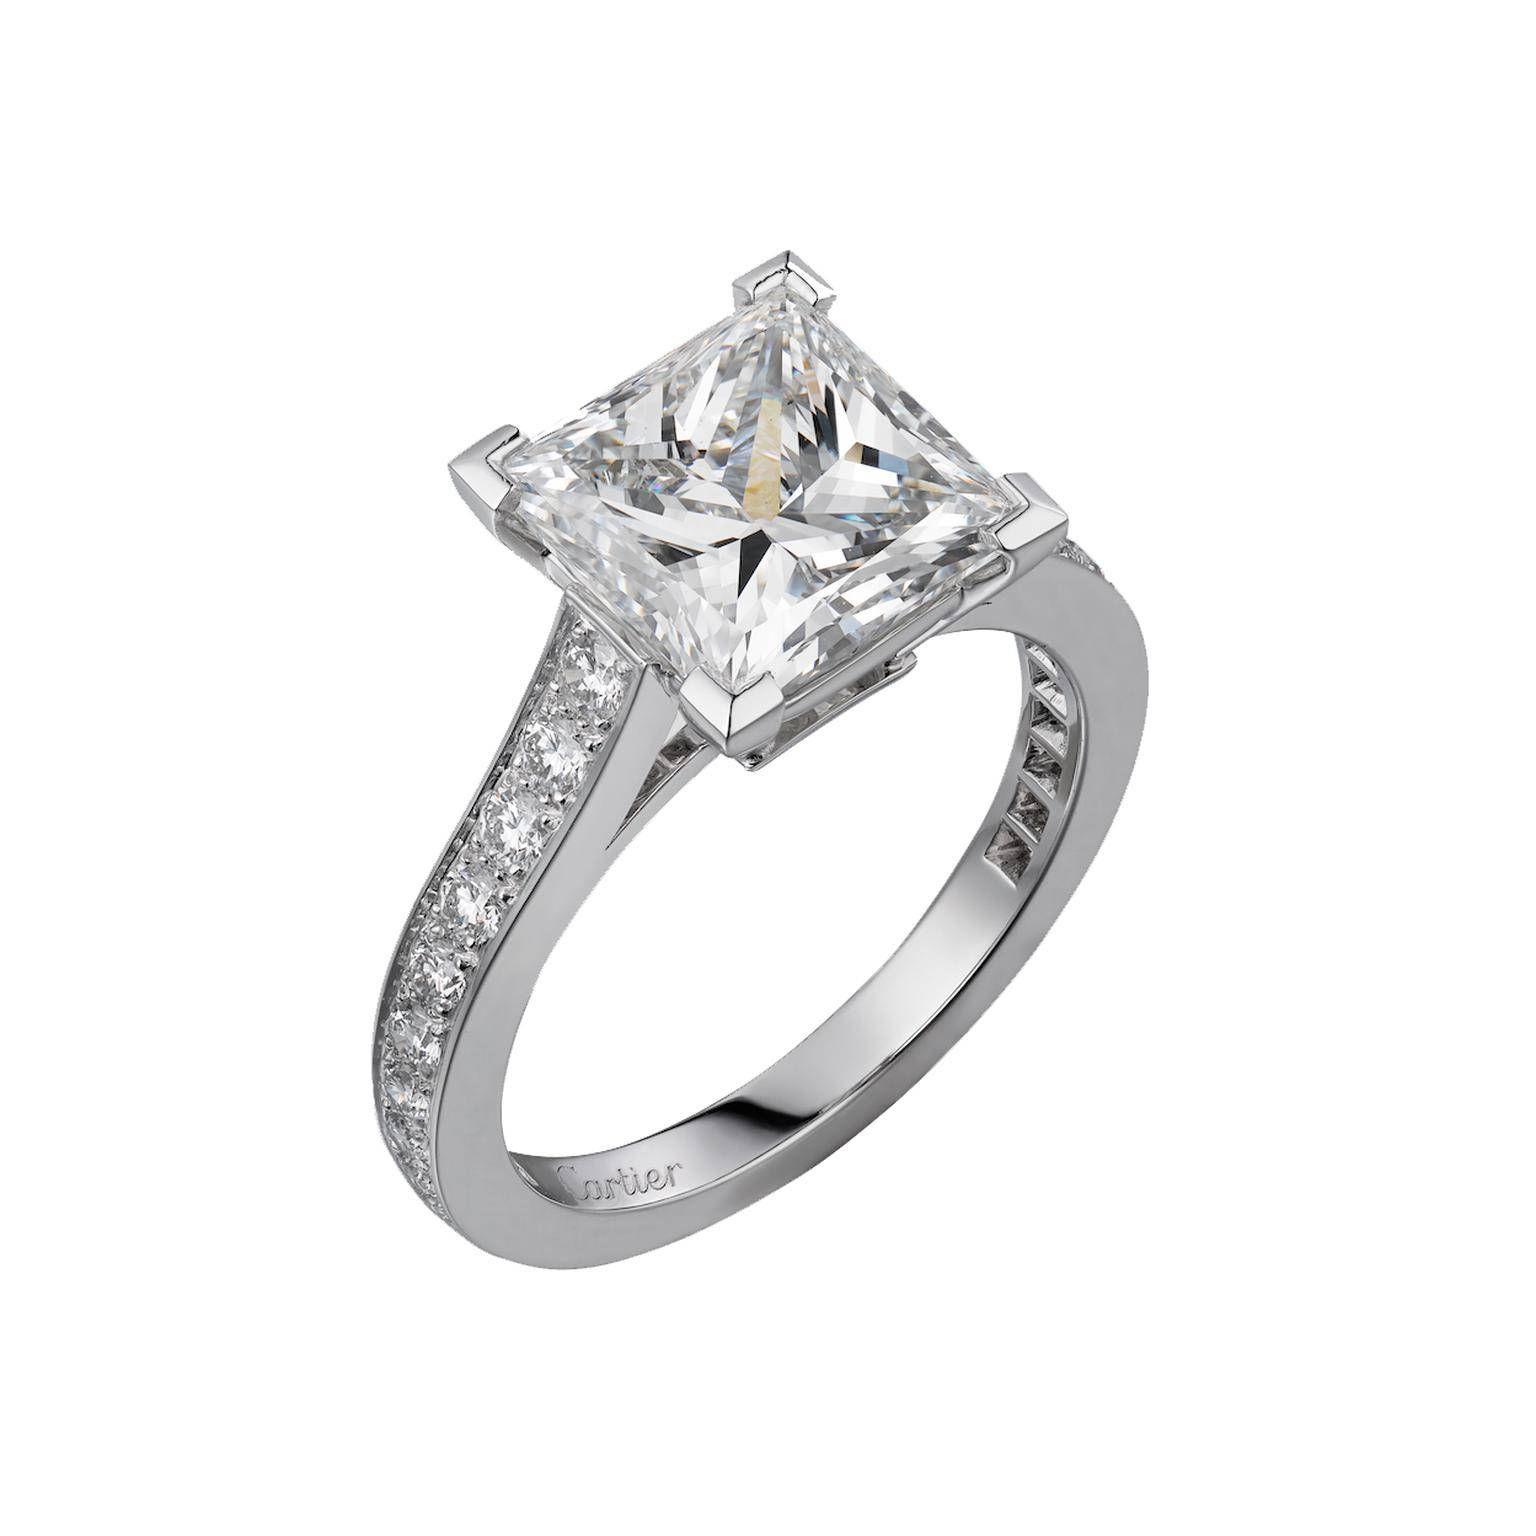 1895 Solitaire Princess Cut Diamond Engagement Ring | Cartier Within Princess Cut Diamond Engagement Rings (View 15 of 15)